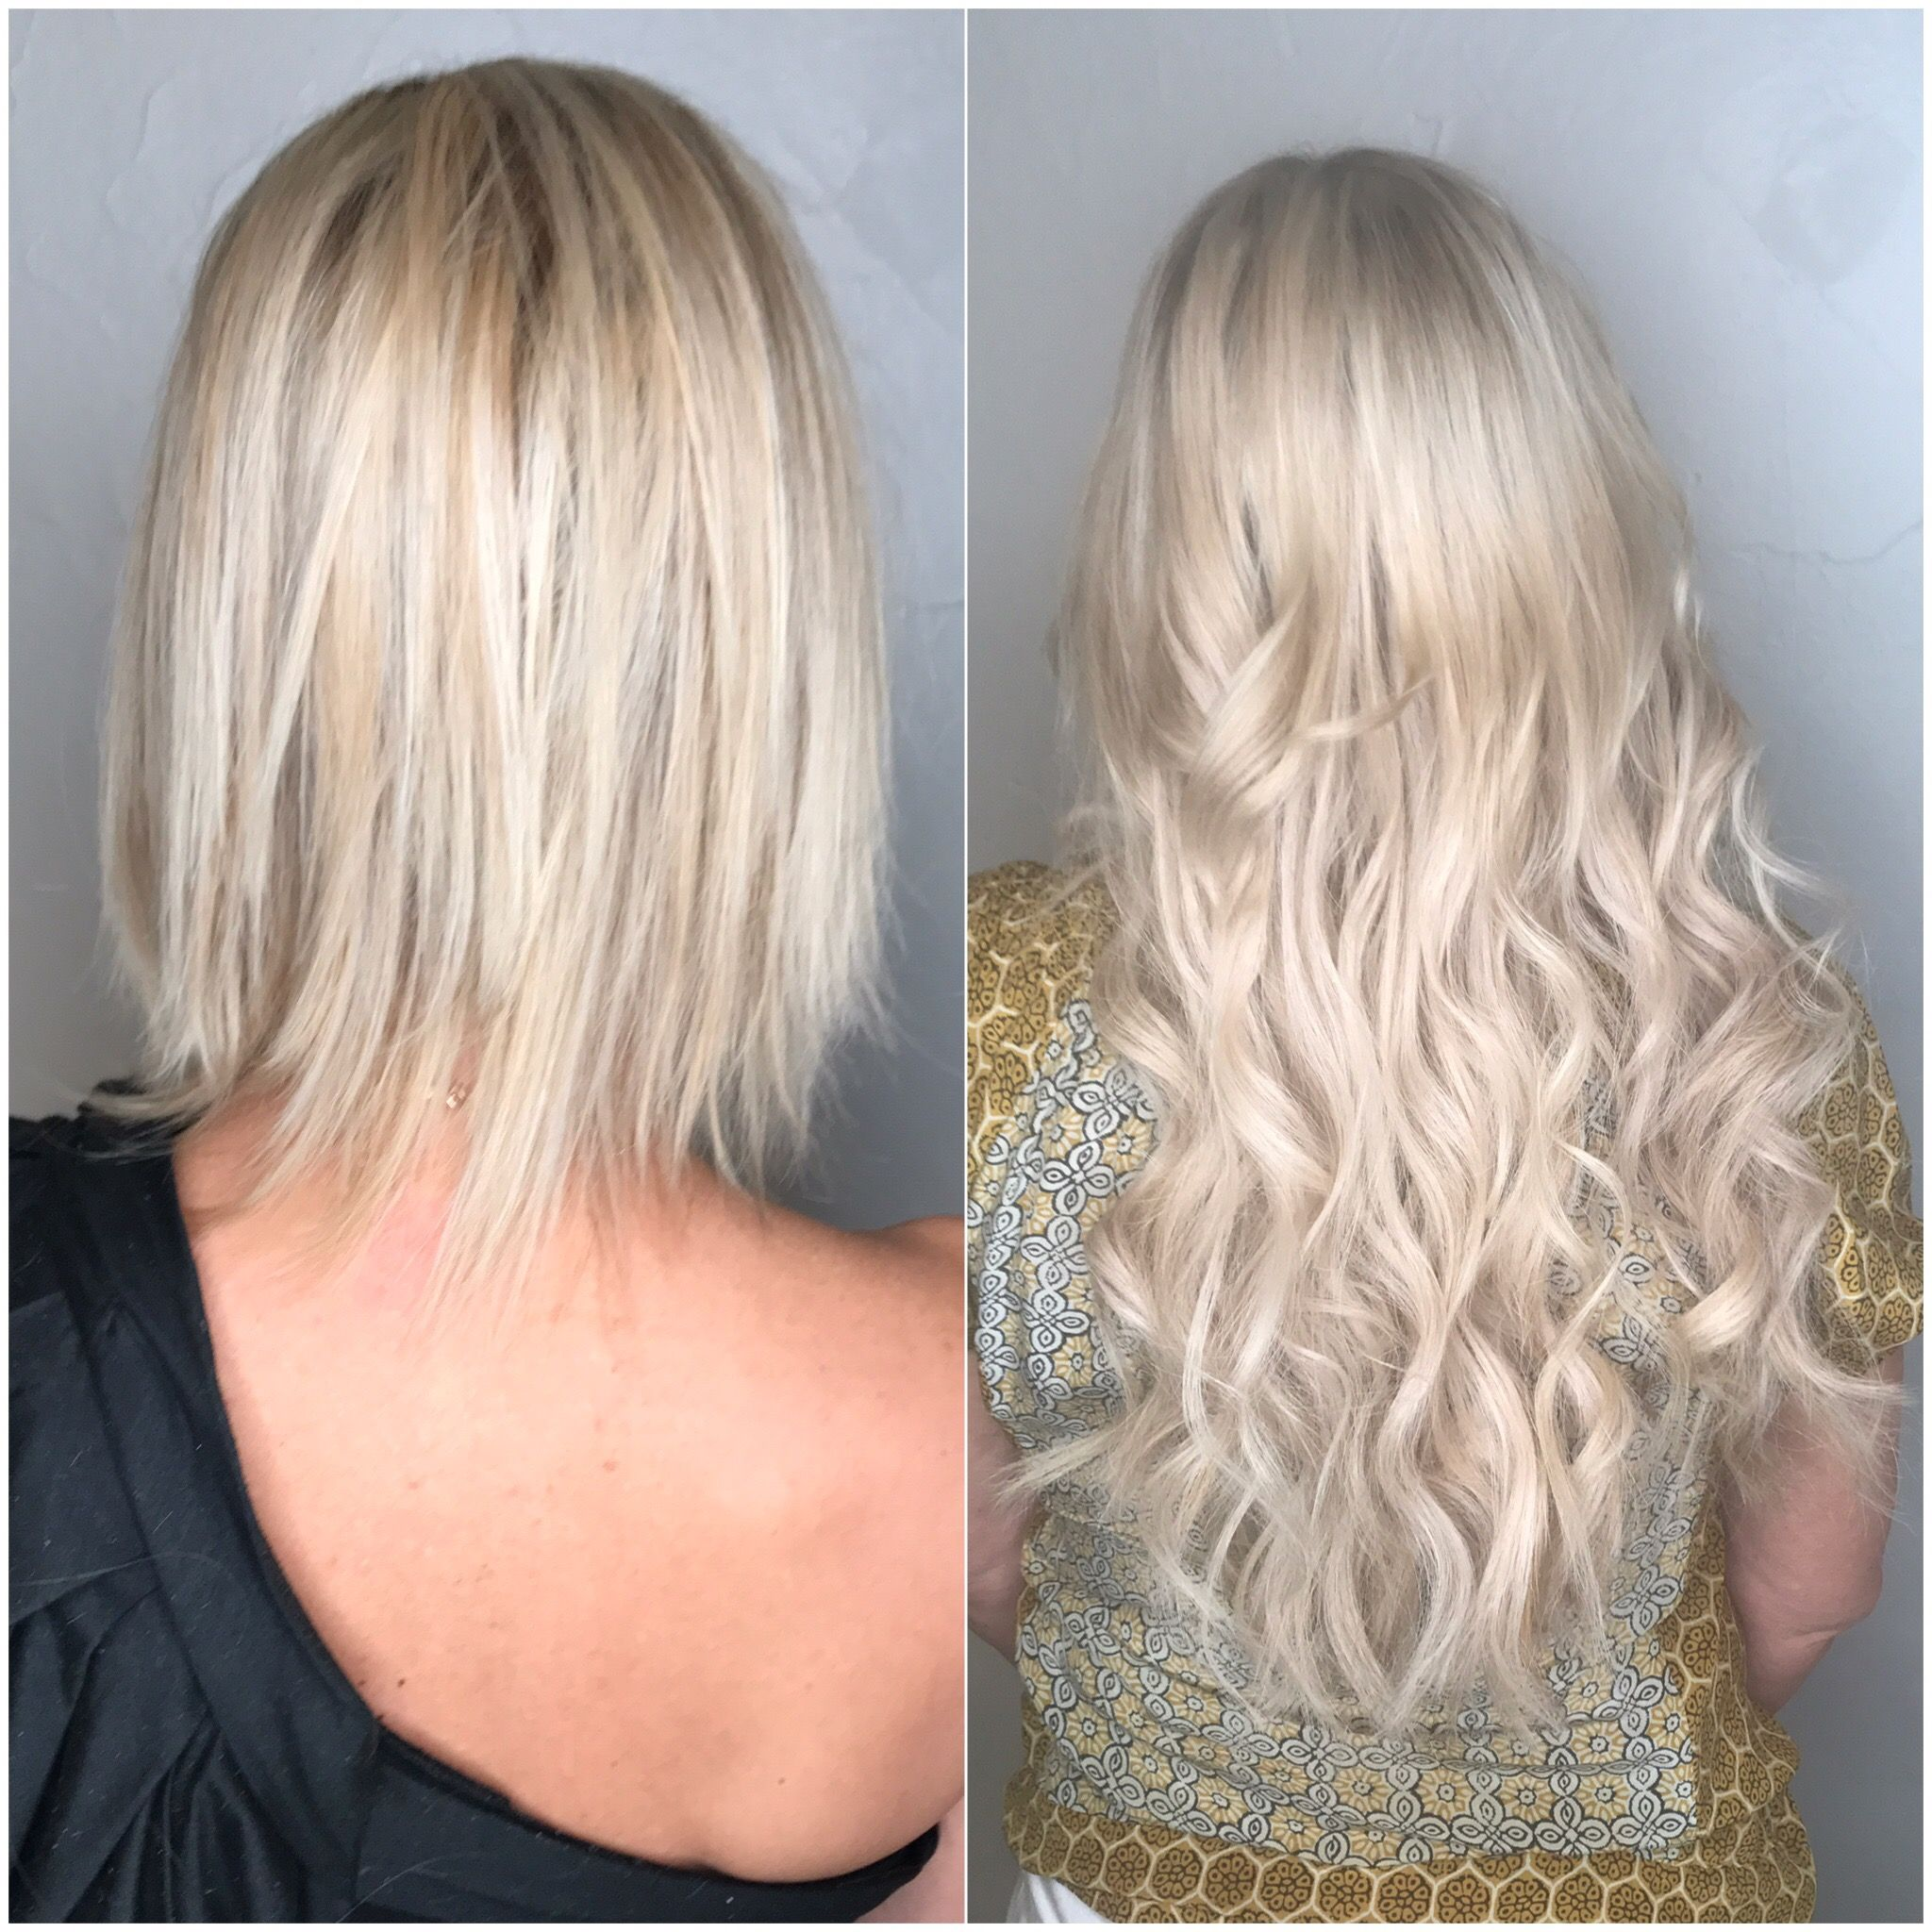 looking for have professional hair extensions, but need to